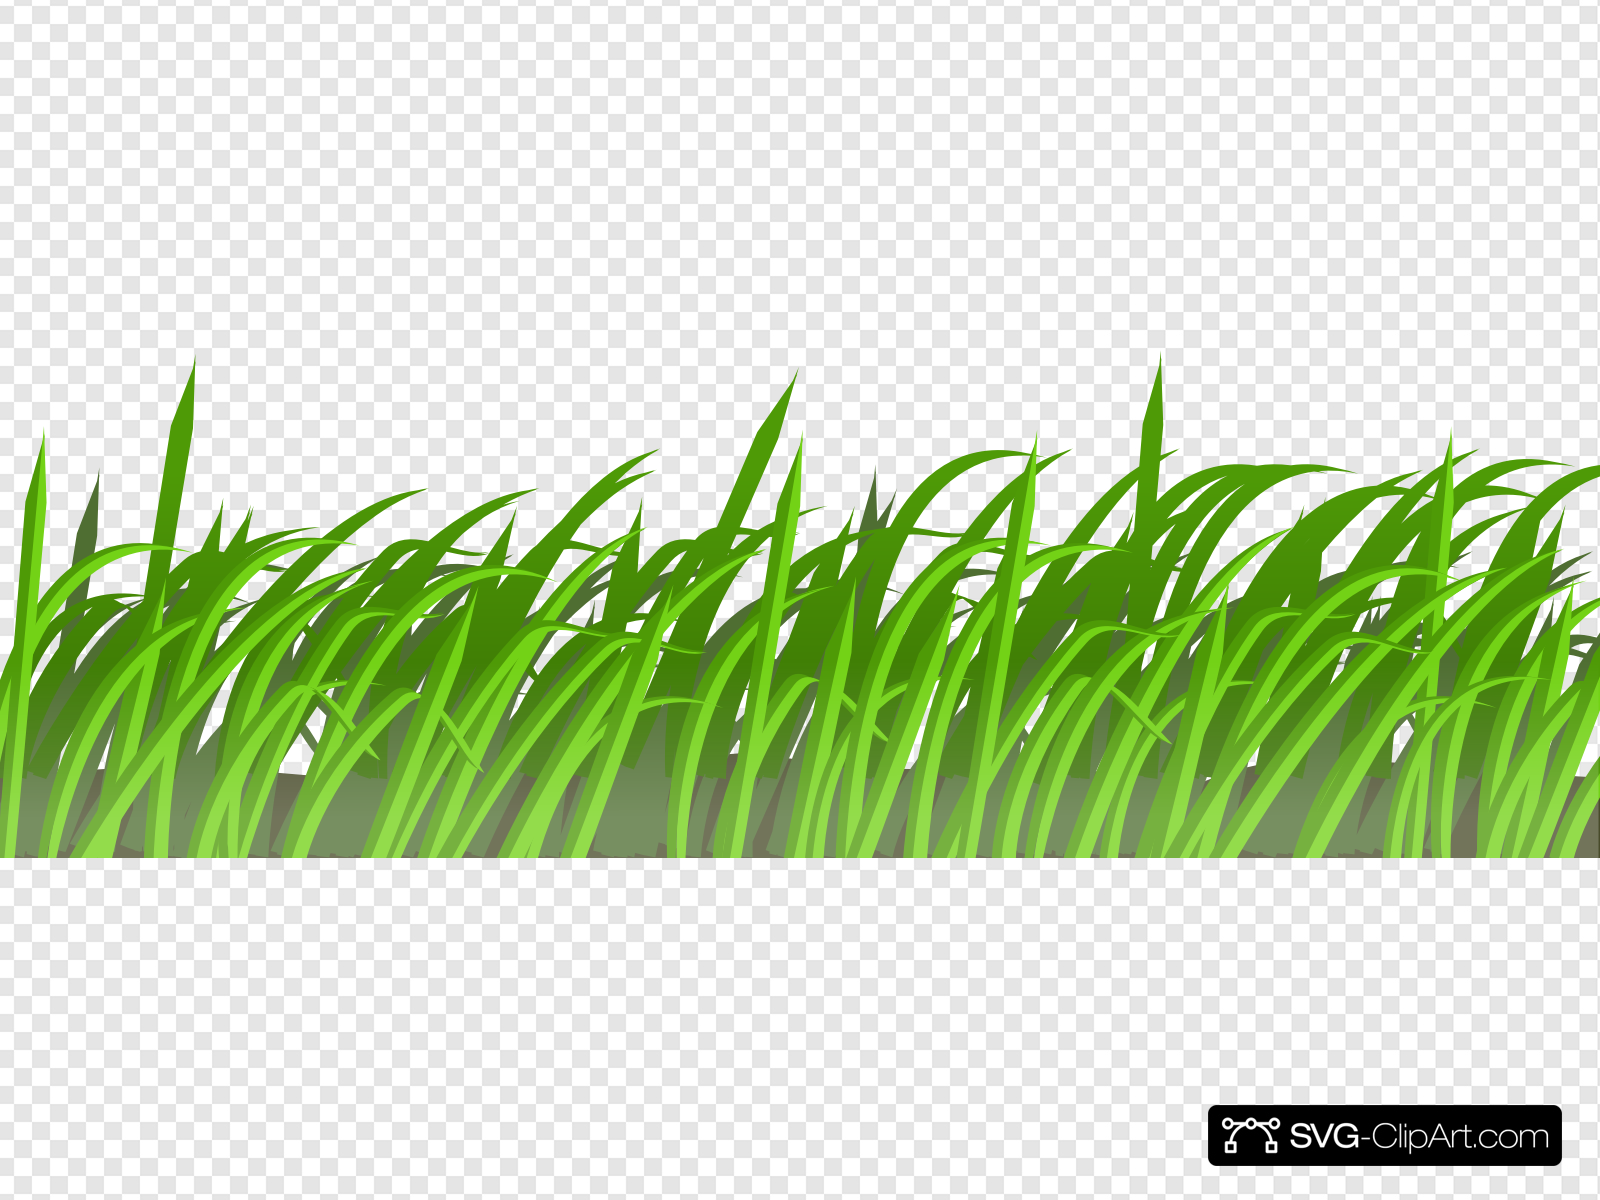 Grass Patch Clip art, Icon and SVG.